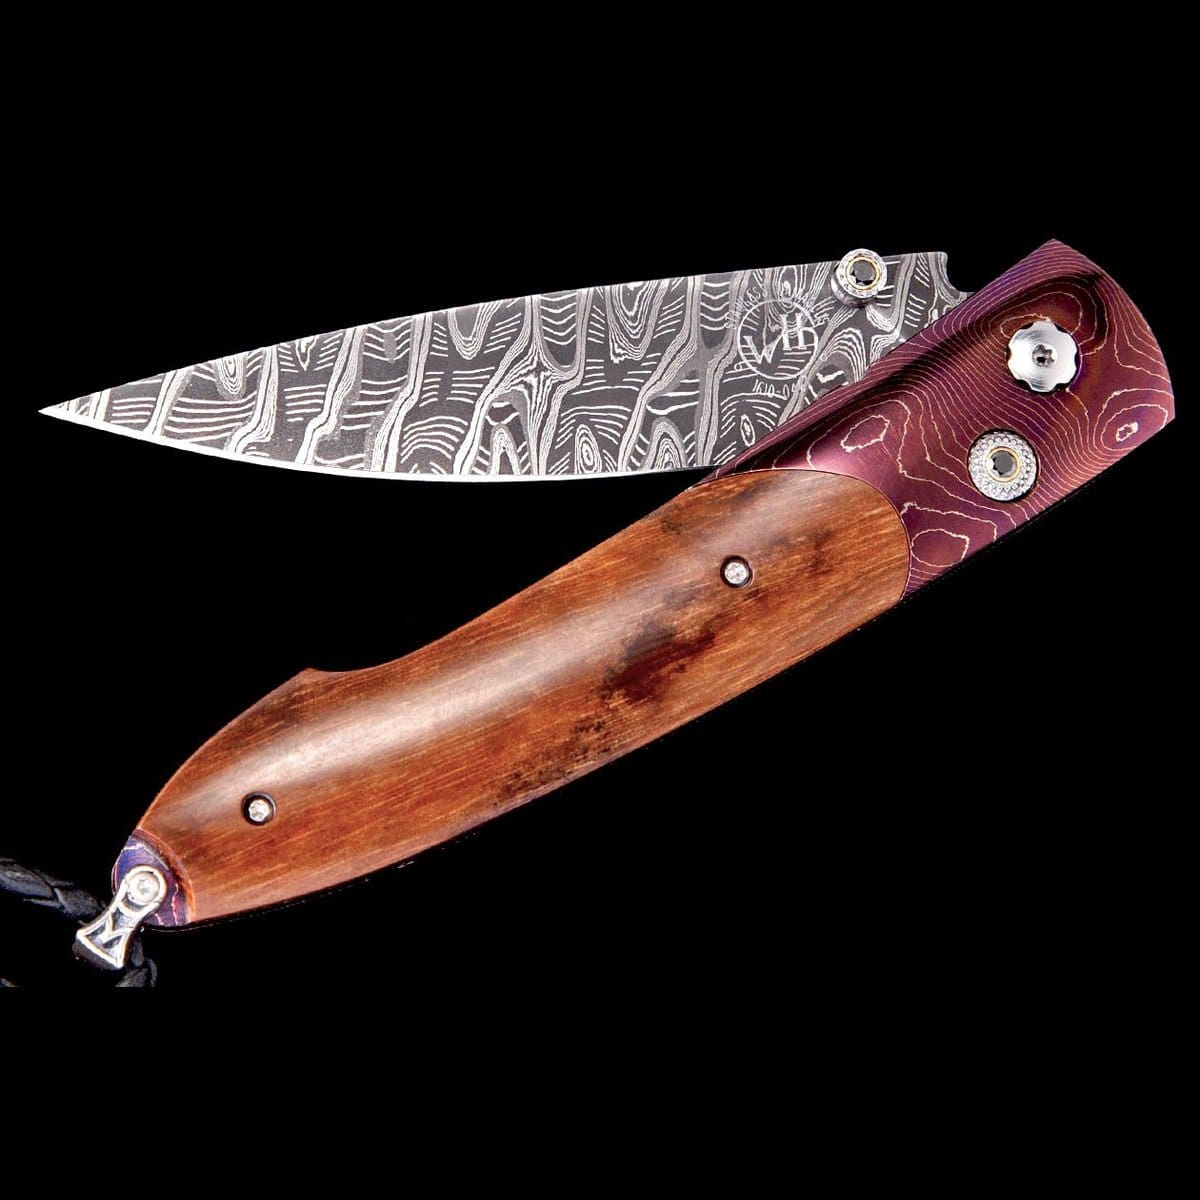 Lancet Orchid Limited Edition Knife - B10 ORCHID - William Henry